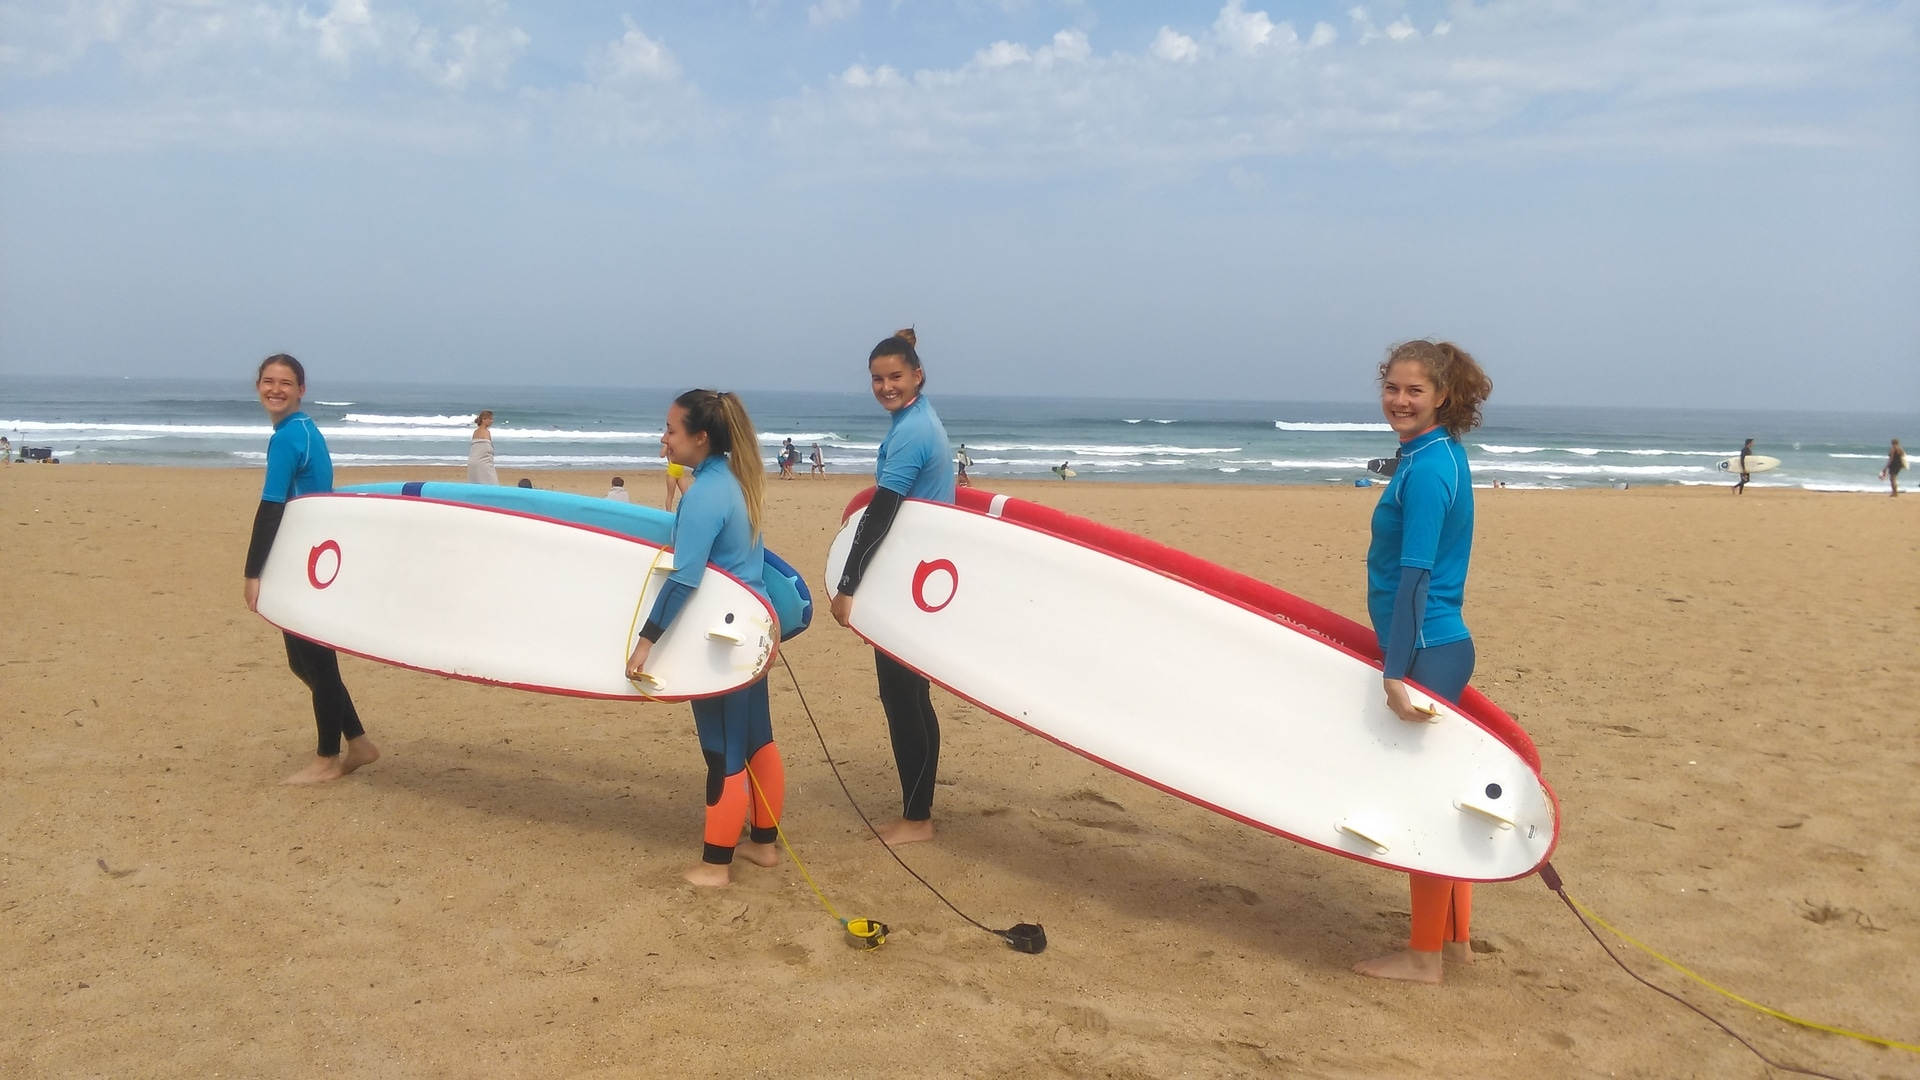 4 girls carrying surfboards on the beach